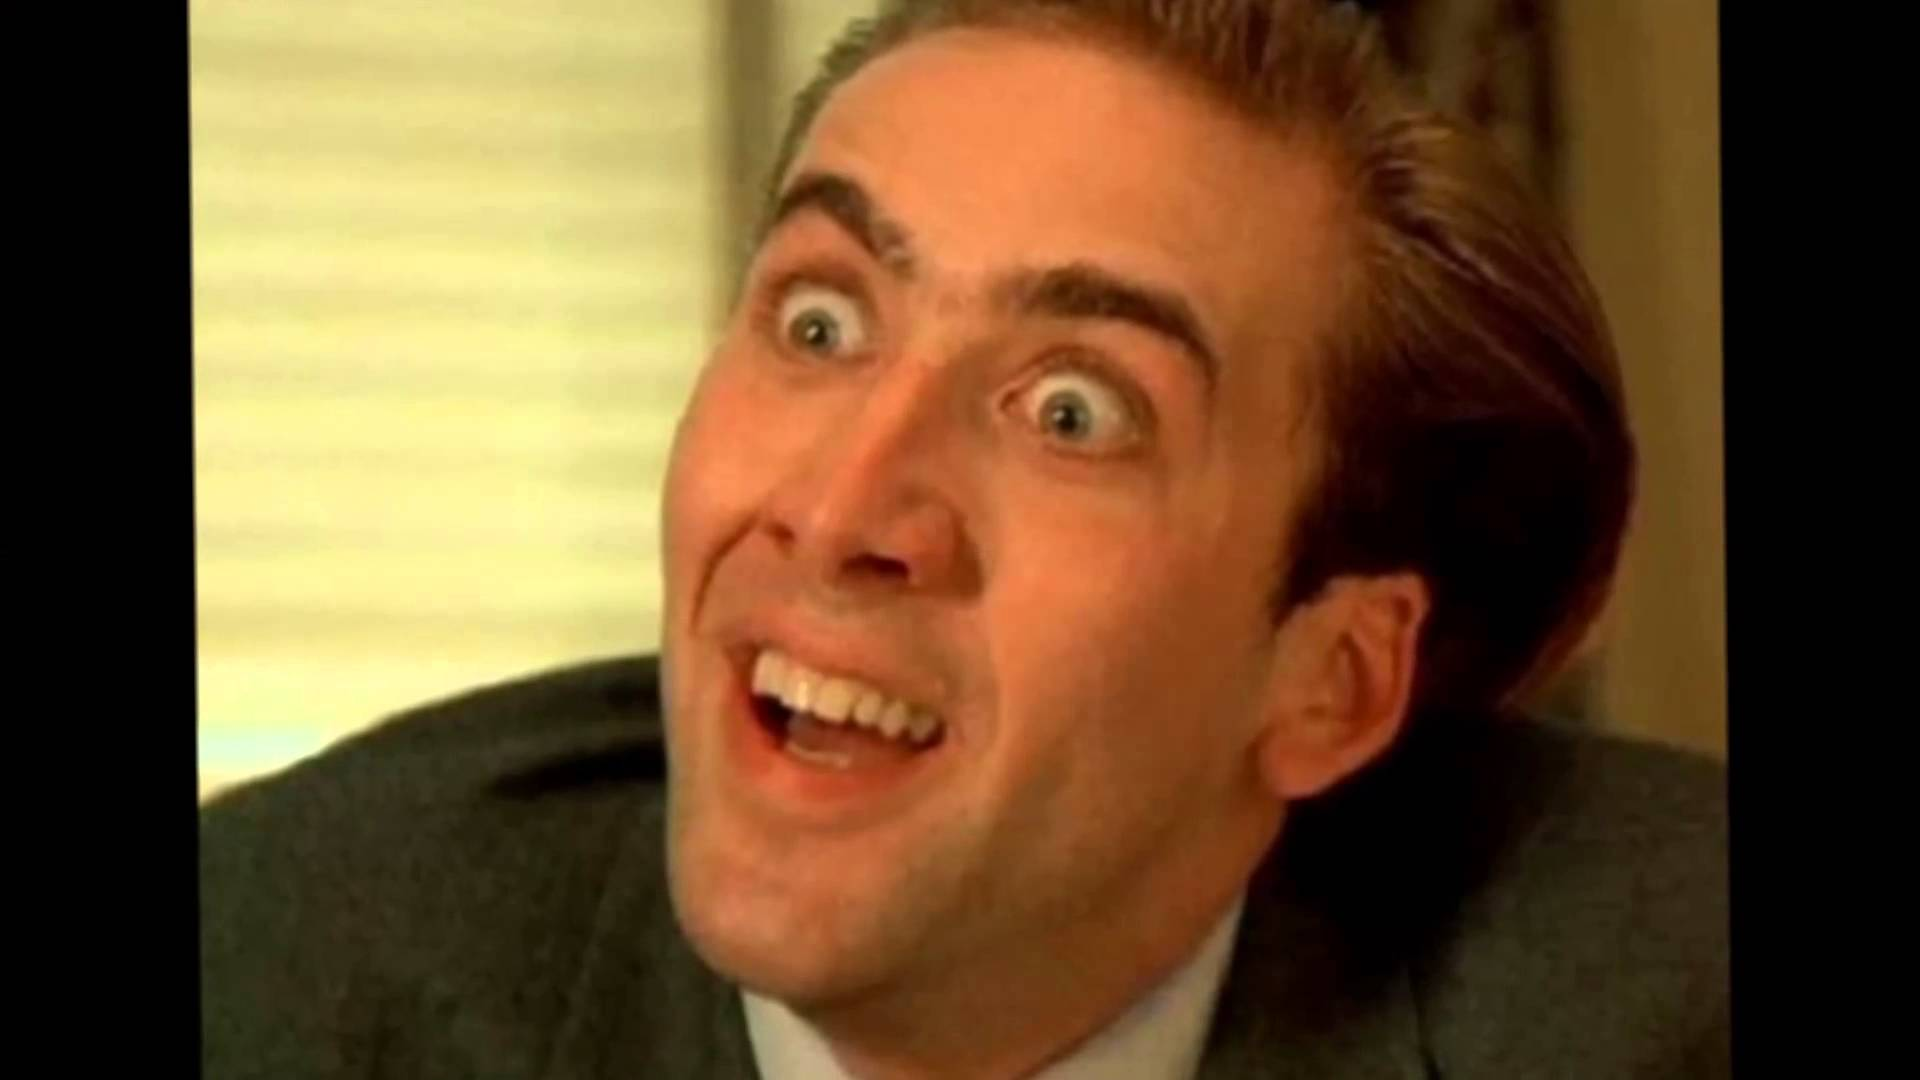 Go Back Pix For Nicolas Cage Funny Face Wallpaper 1920x1080